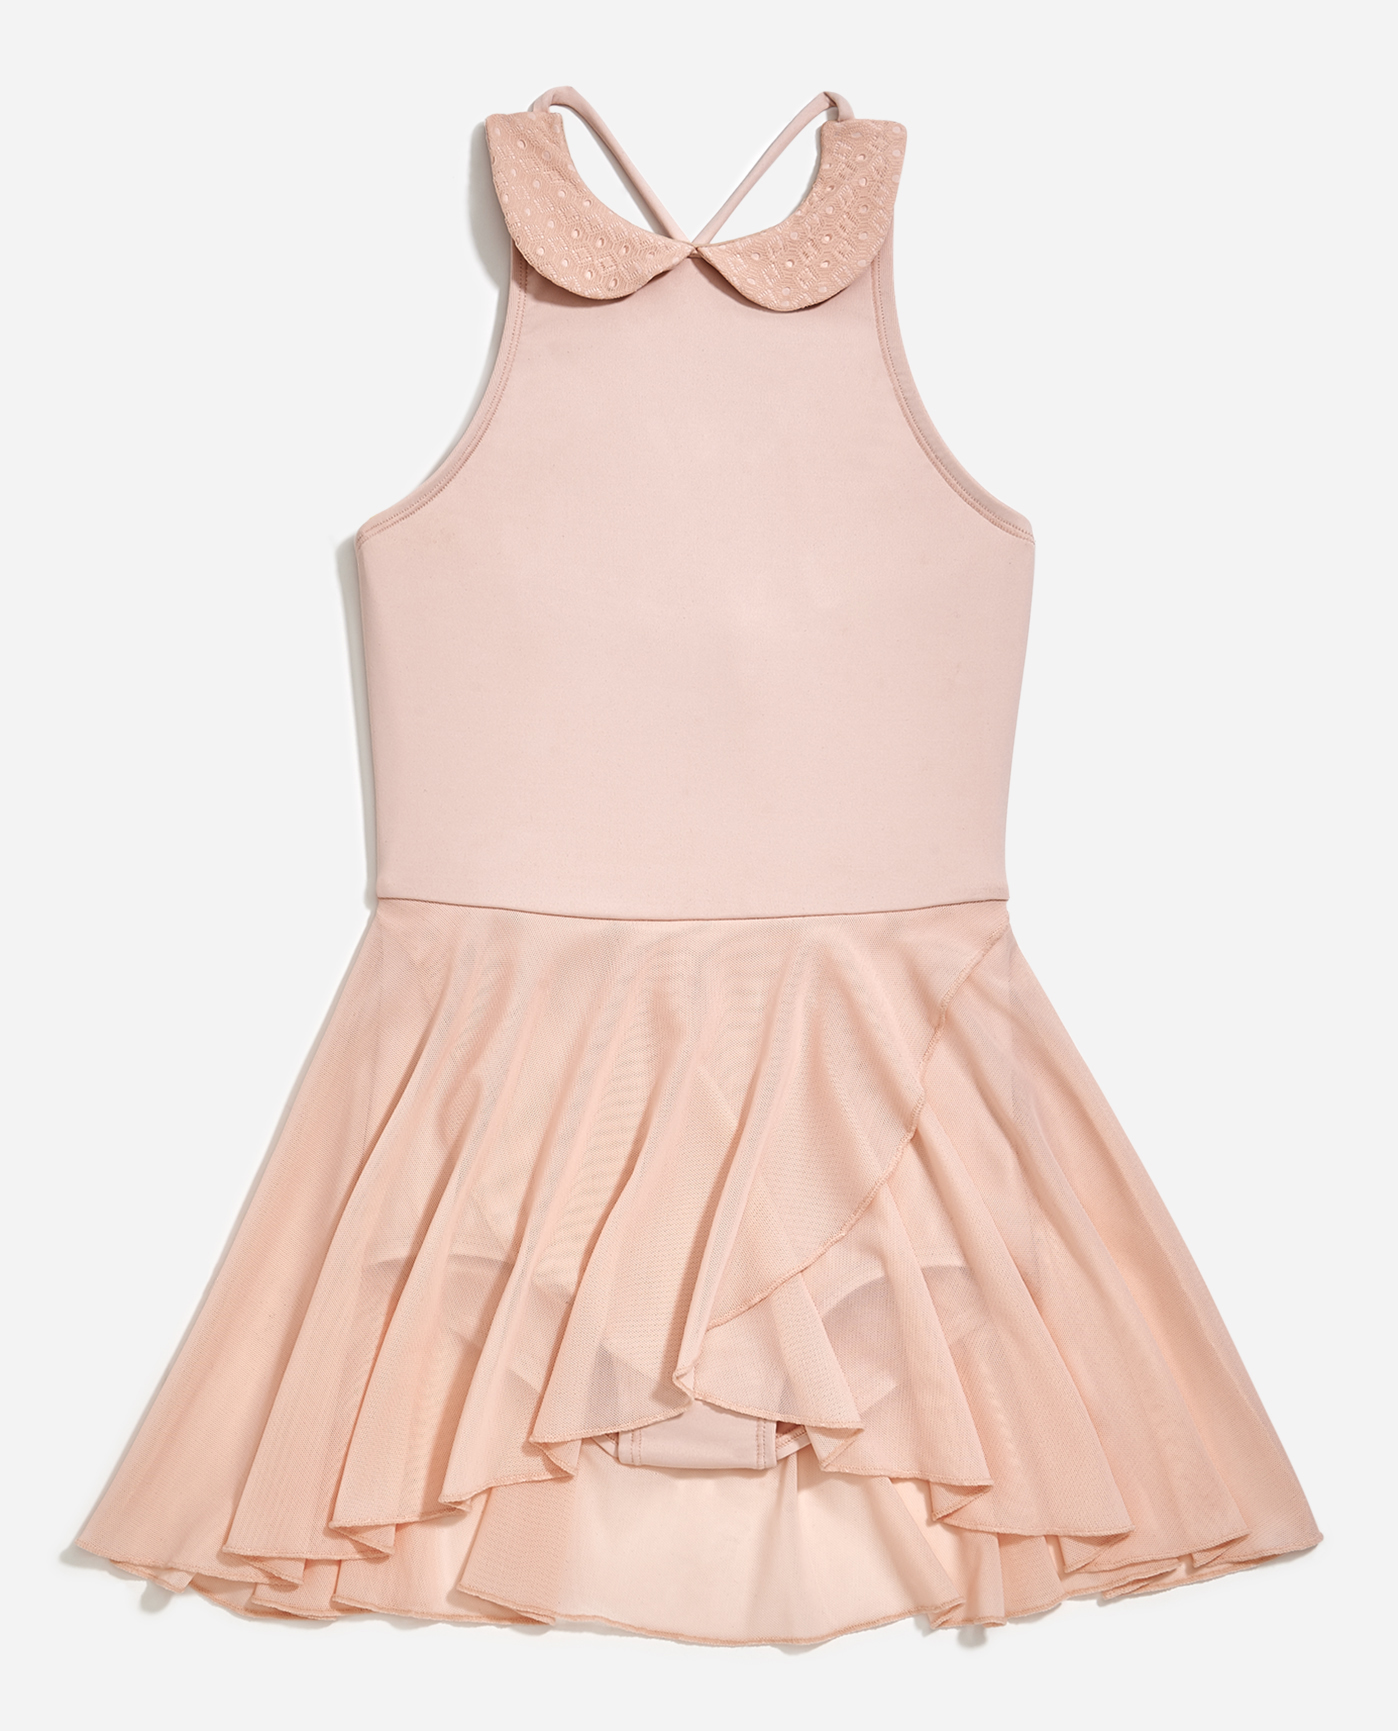 Girl's Halter Leotard Dress